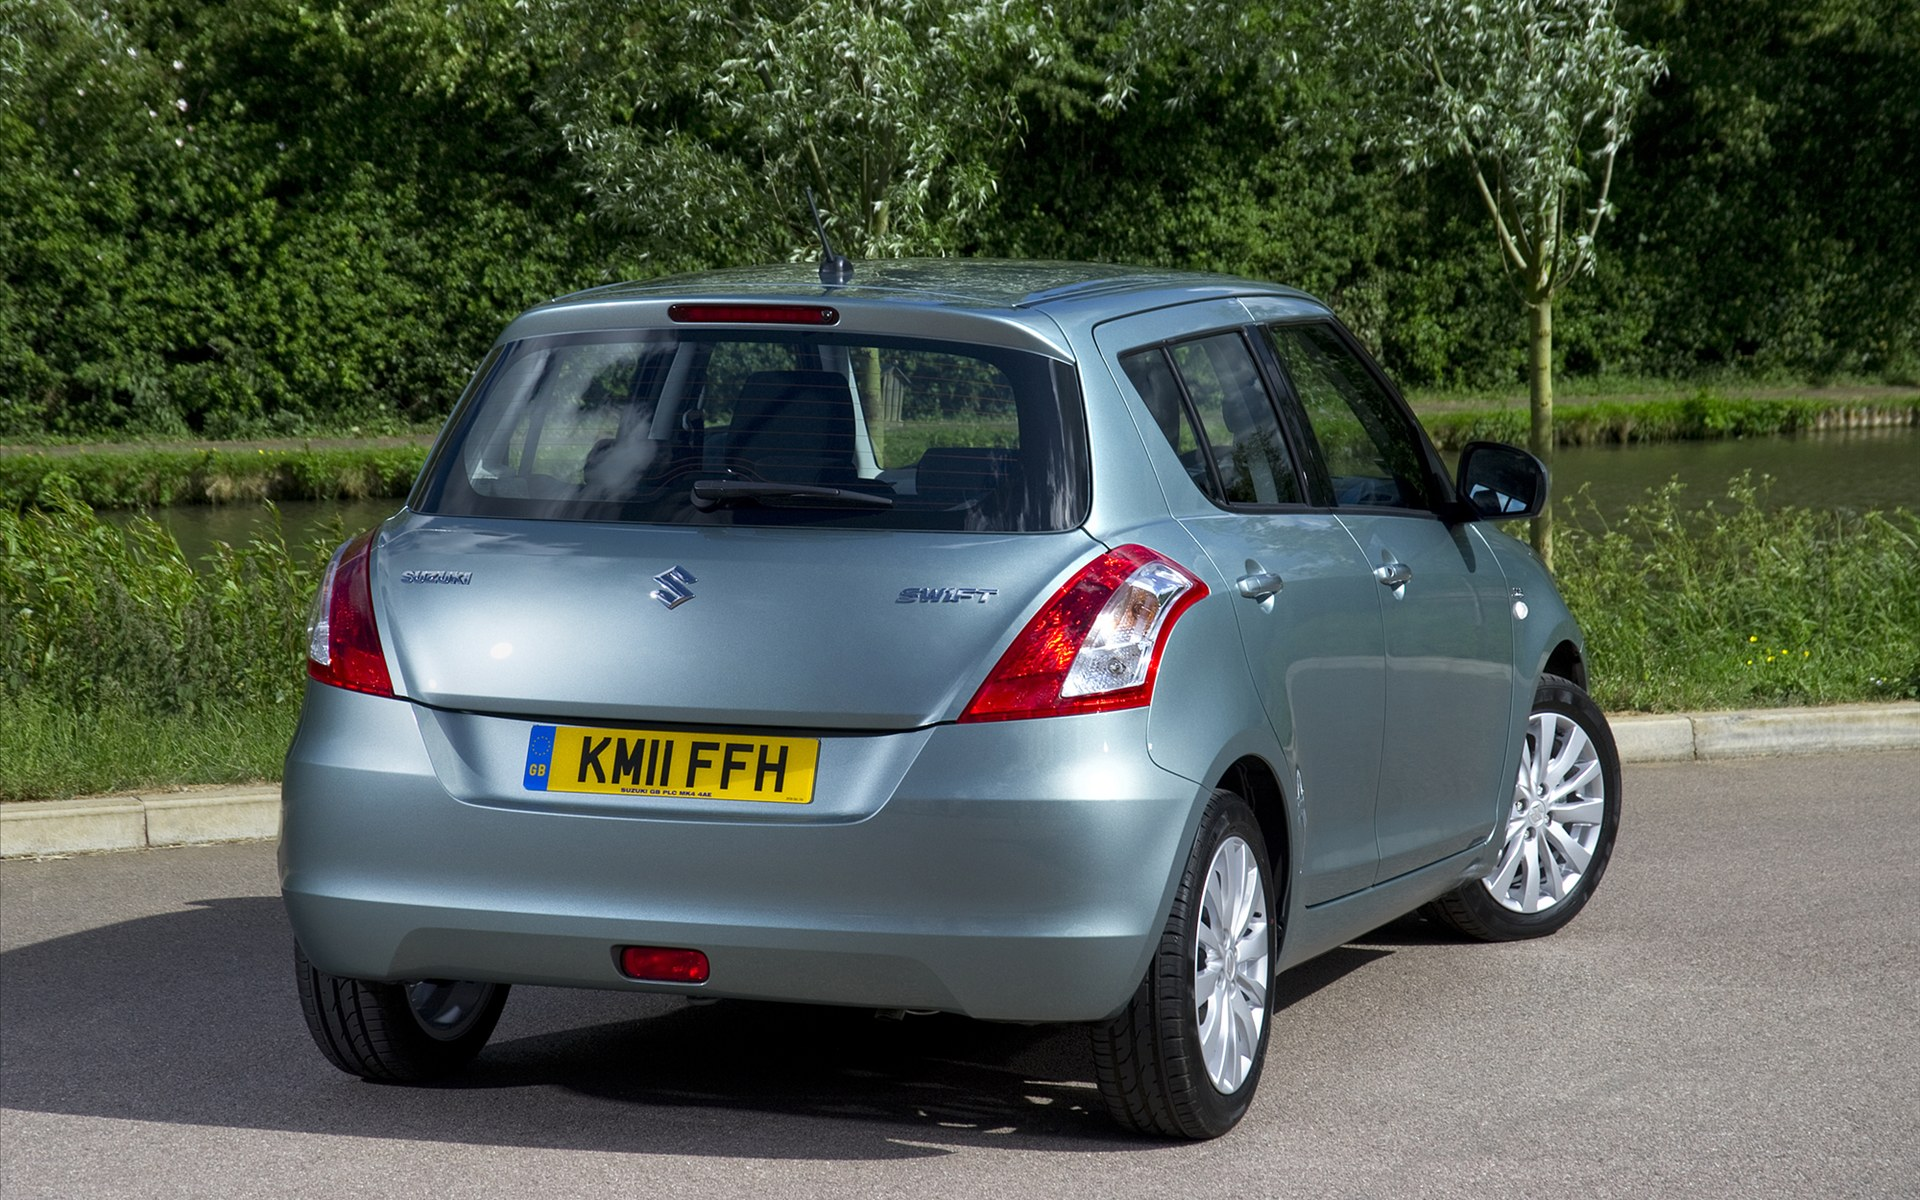 Suzuki Swift DDiS 2011 1 European Suzuki Swift Diesel Vehicle  Energy Efficient and Fuel Economic